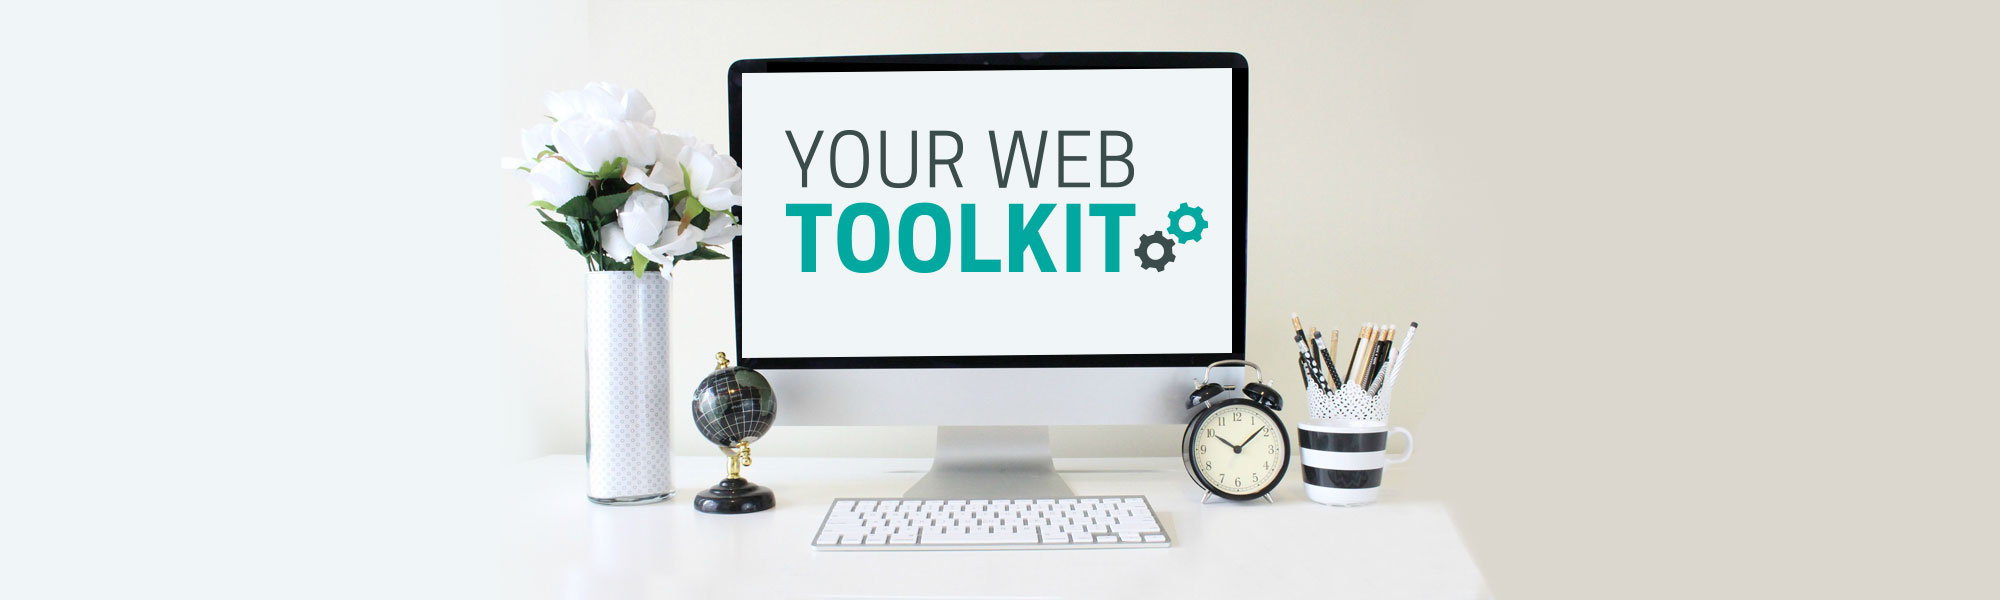 Your Web Toolkit header image